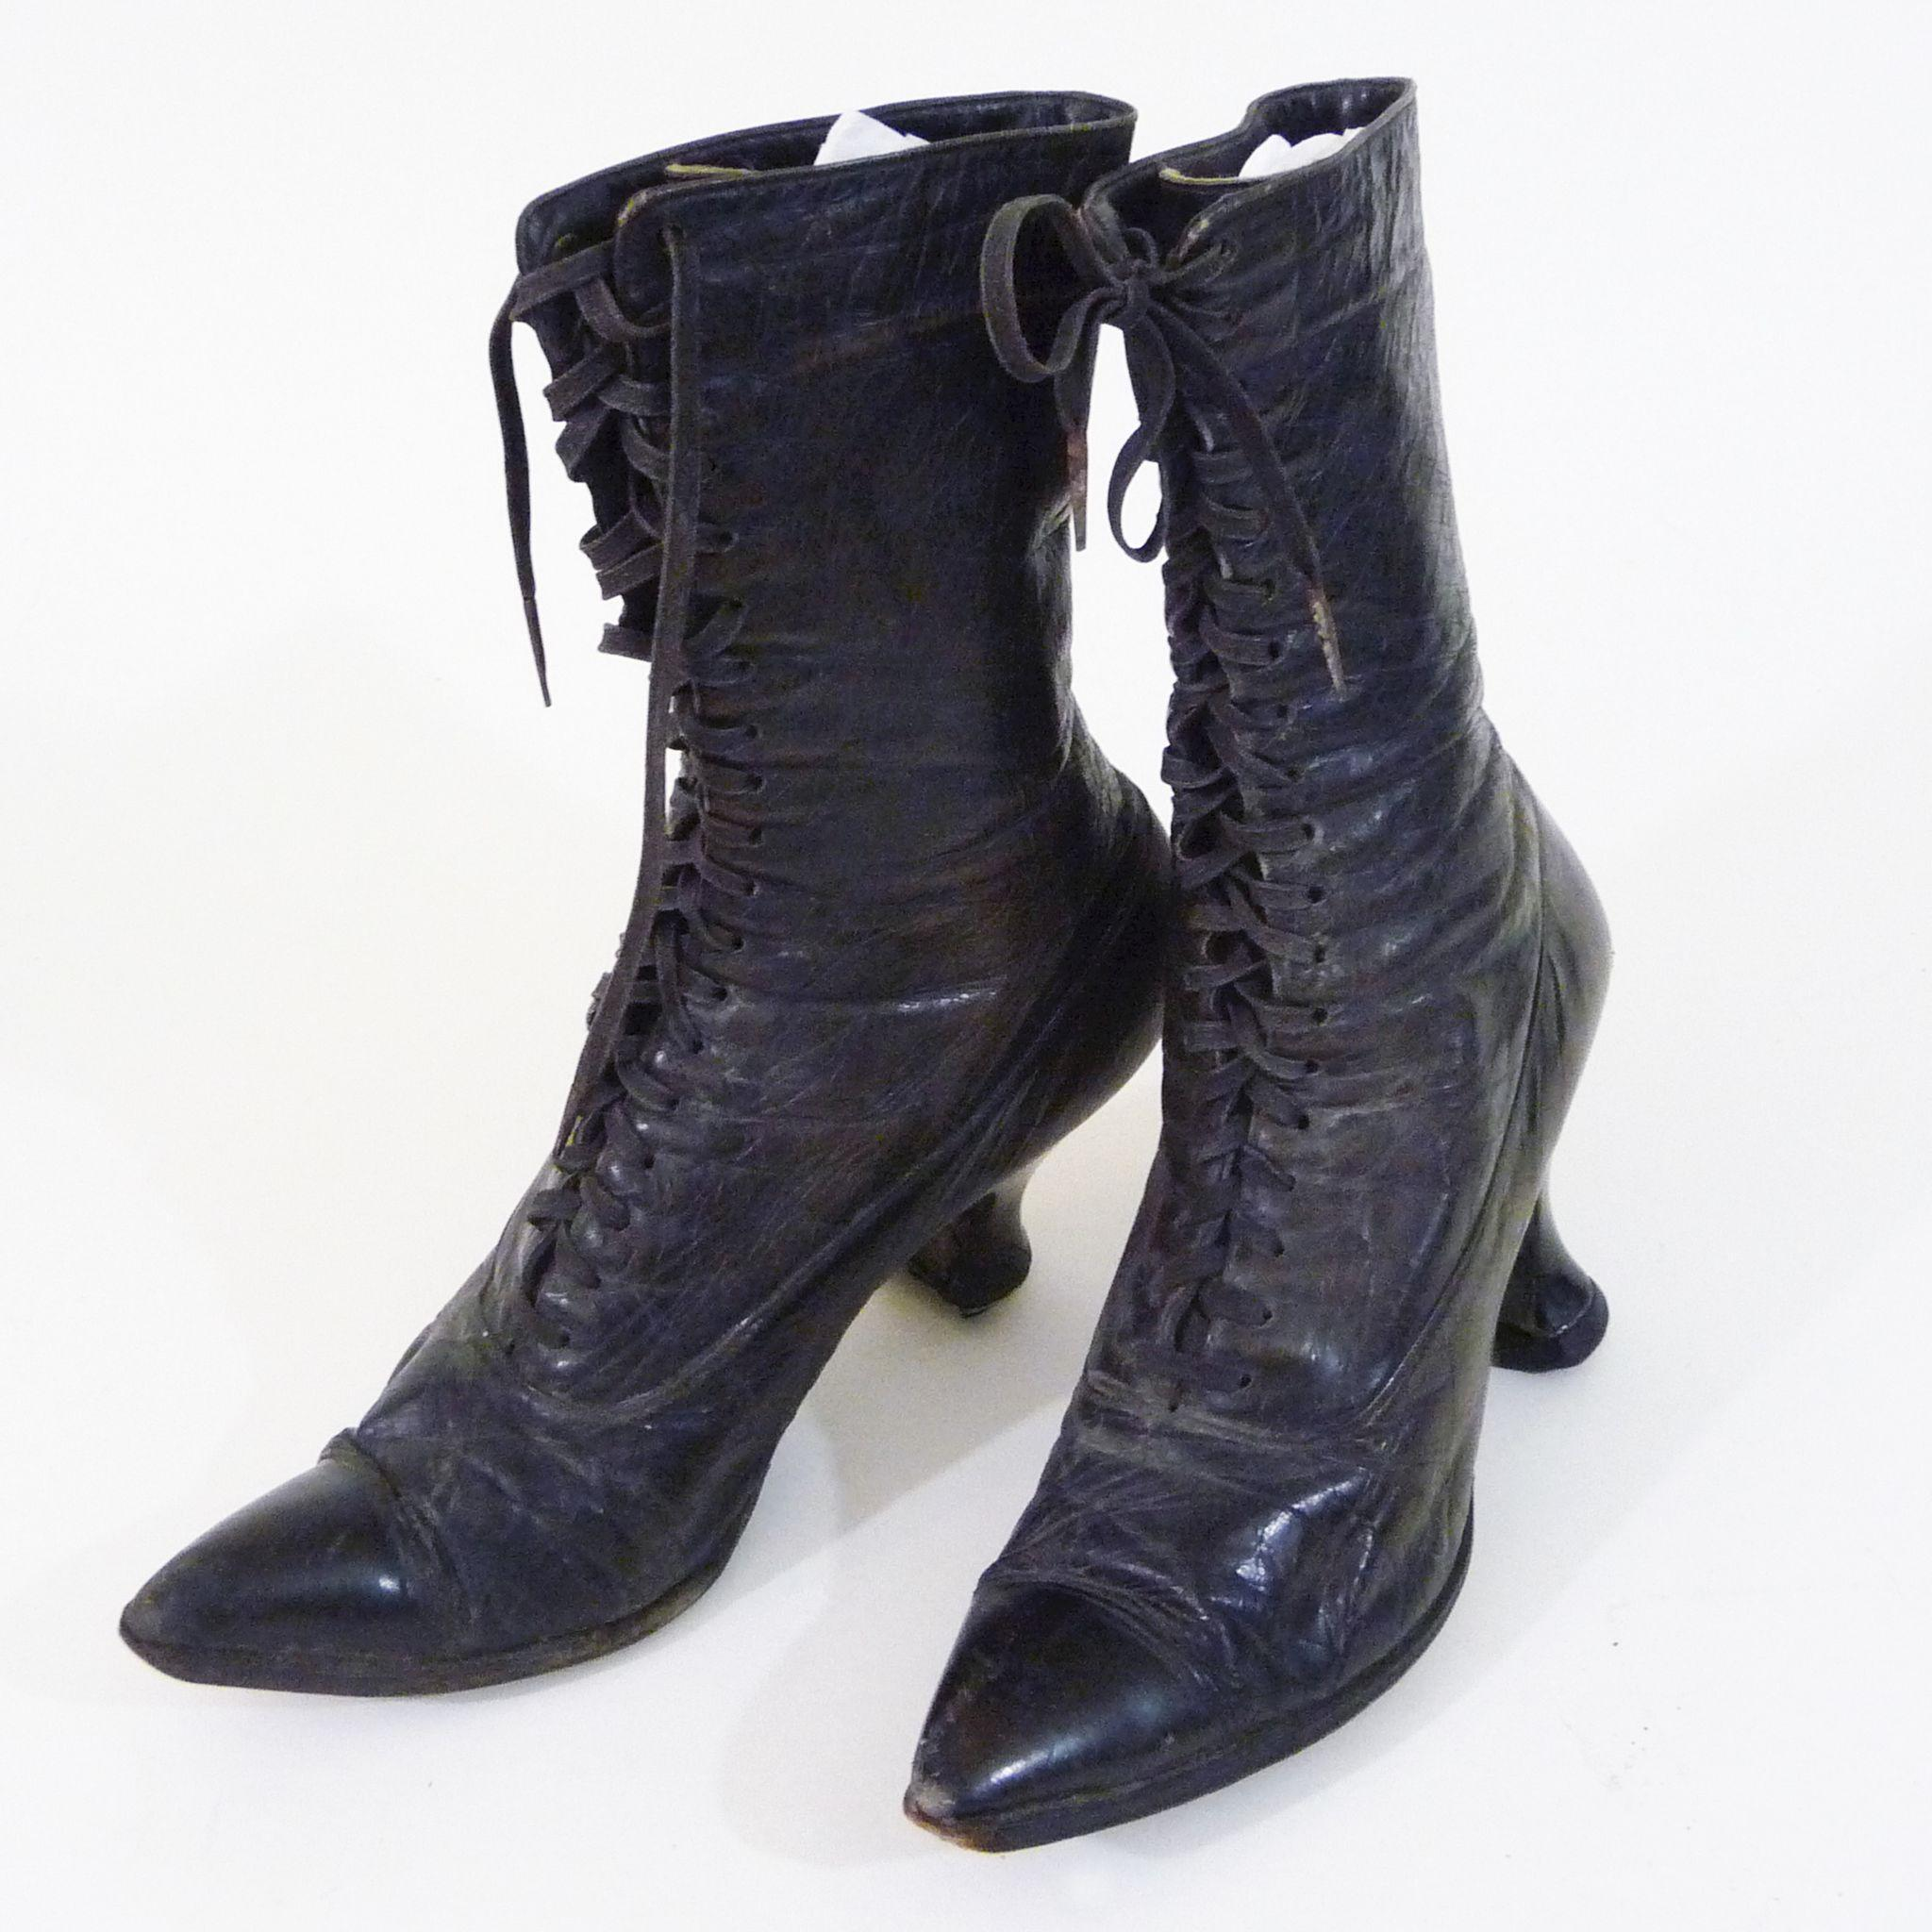 ca. Victorian Black Leather Oxford Style Boots